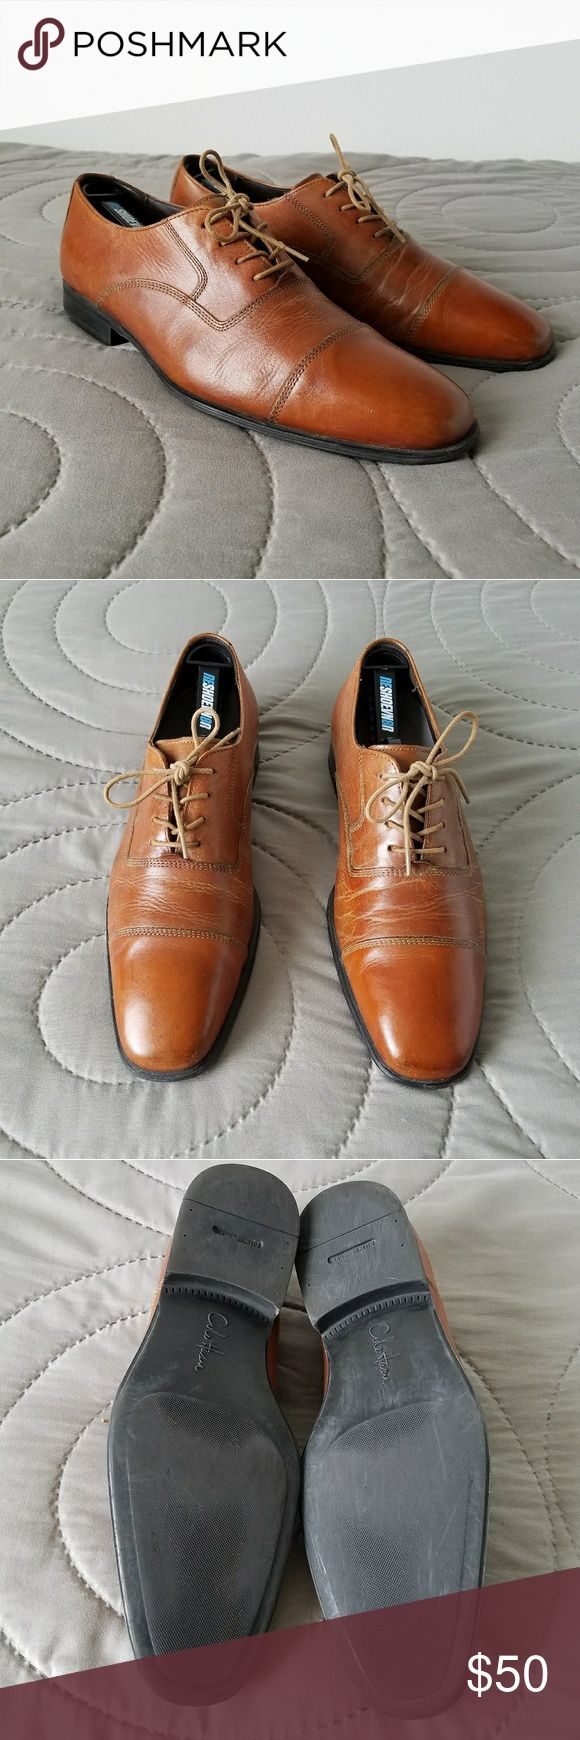 Cole Hann Dress Shoes Size 9 Lightly used Cole Hann Dress Shoes. Size 9. 8/10 condition. Some wear on the heels. Ships next day. Make an offer. Cole Haan Shoes Oxfords & Derbys